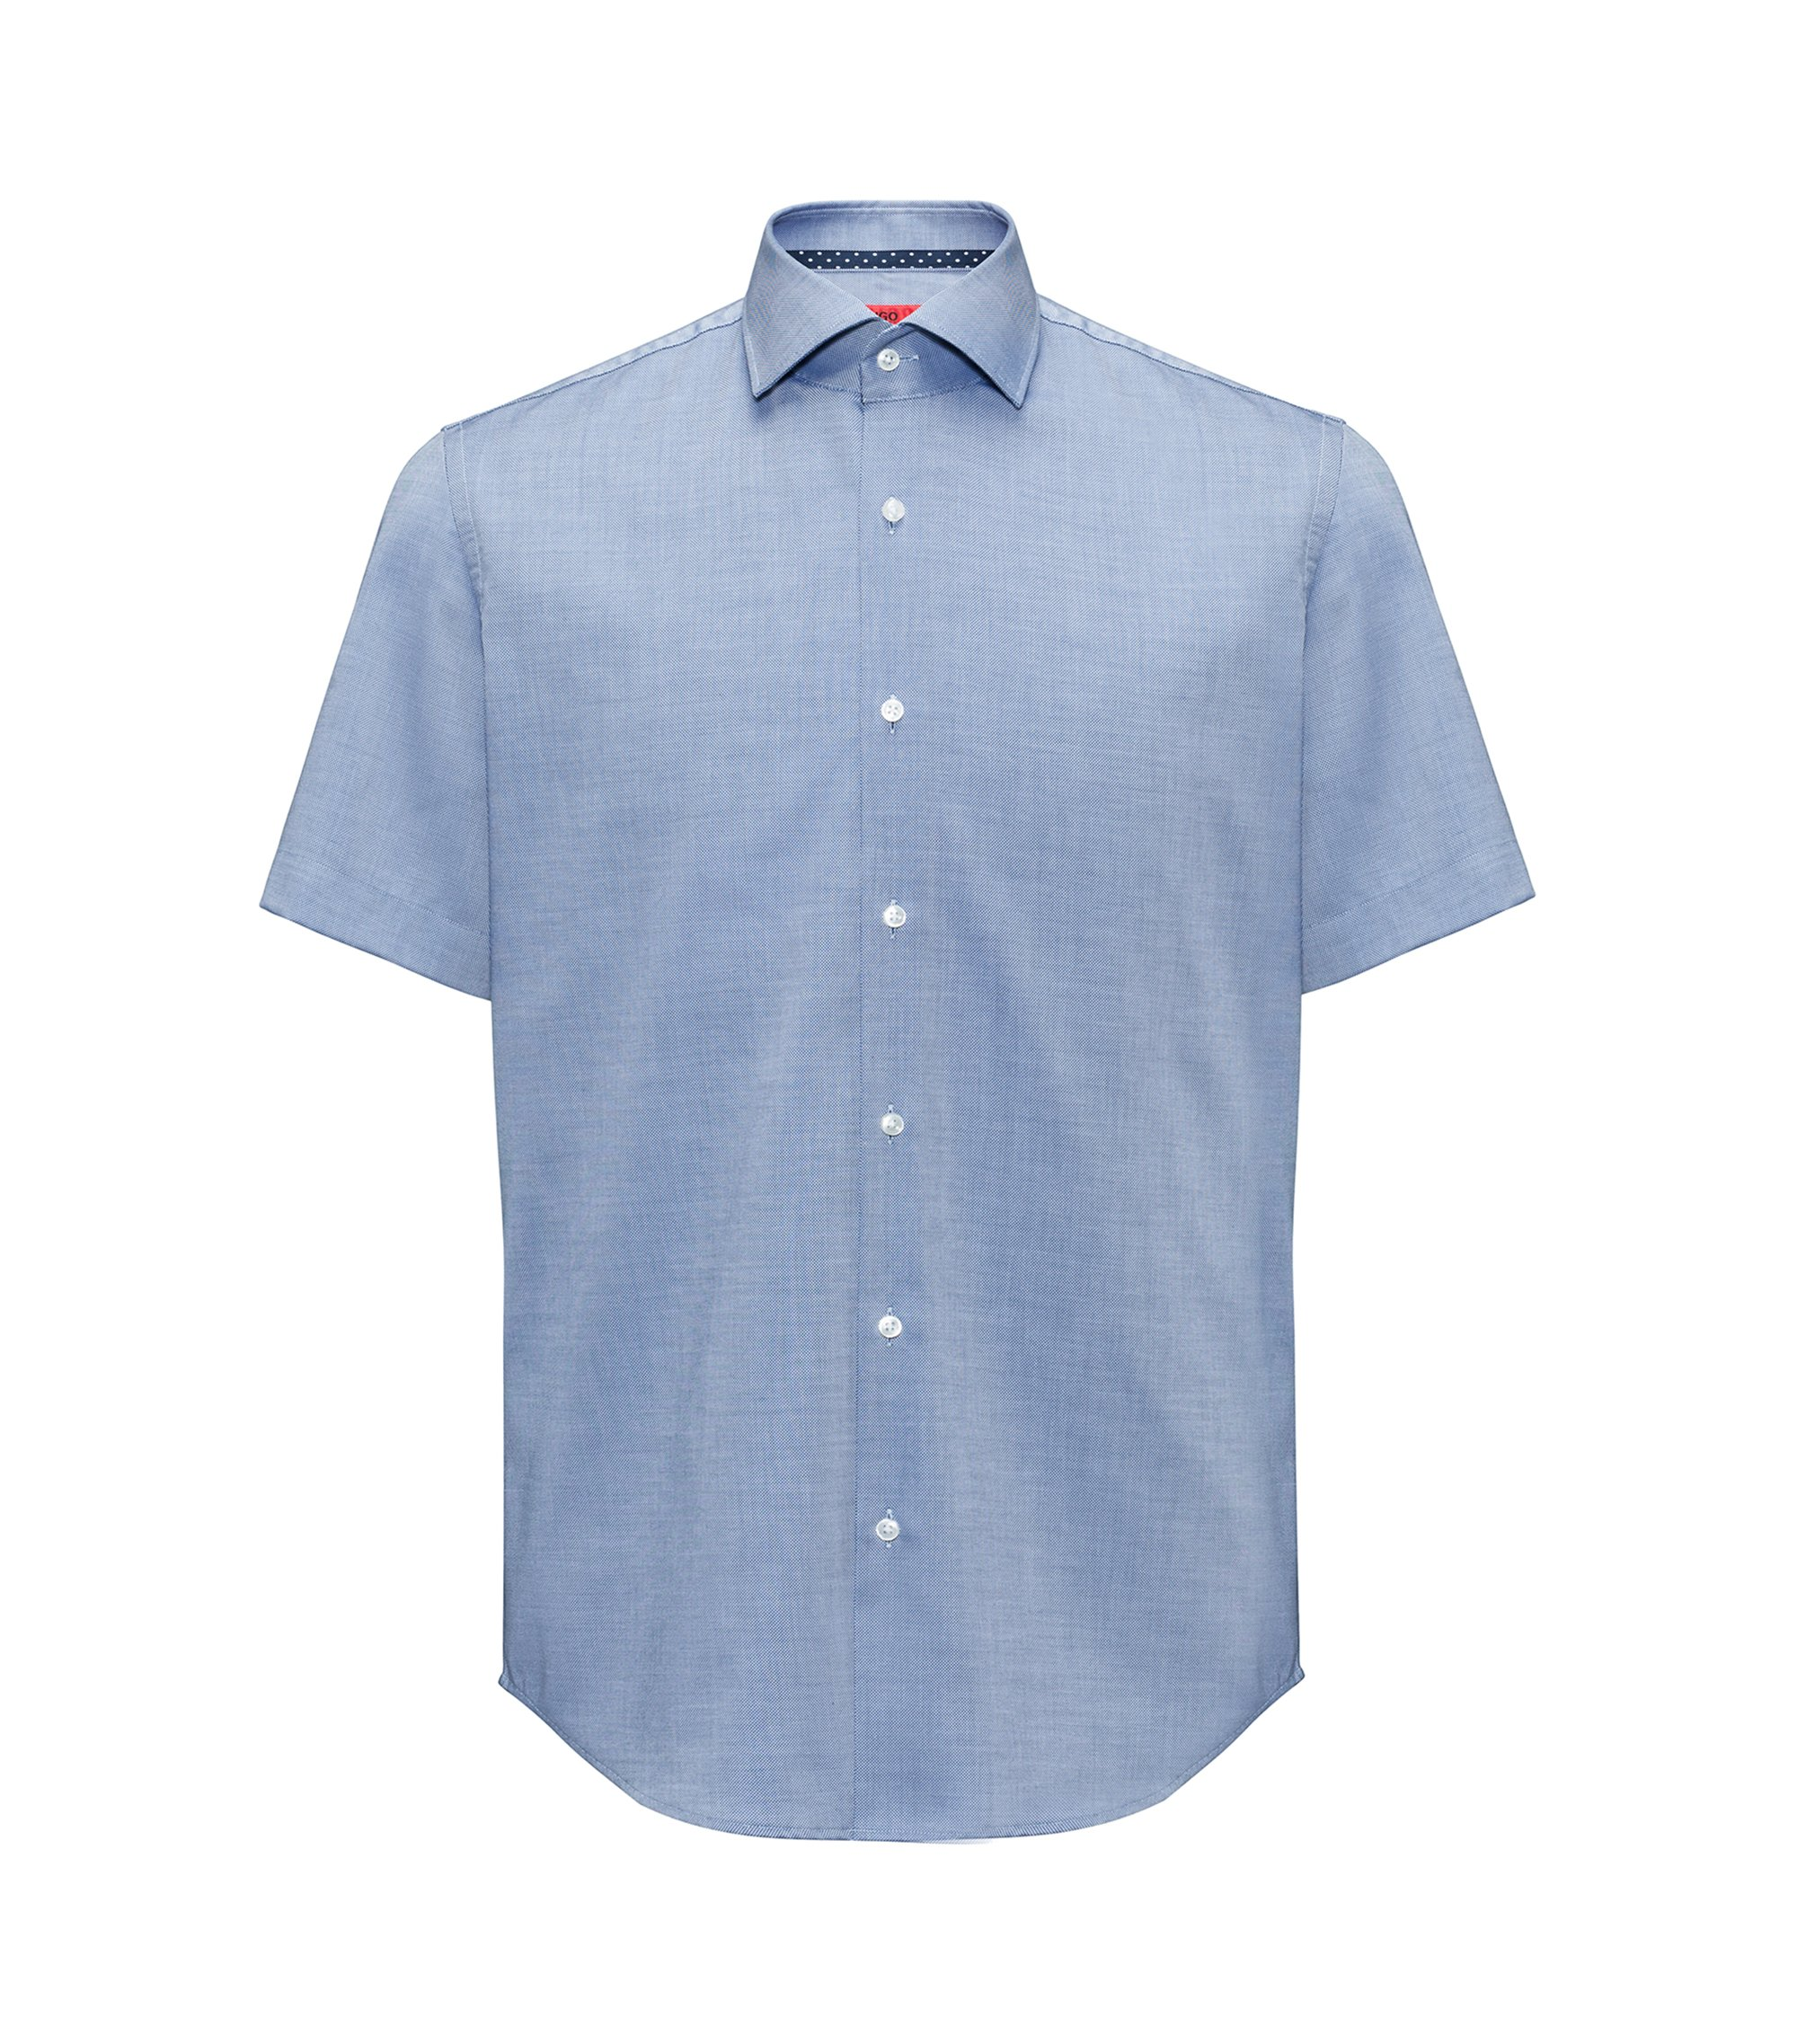 Camicia a maniche corte regular fit in cotone facile da stirare, Blu